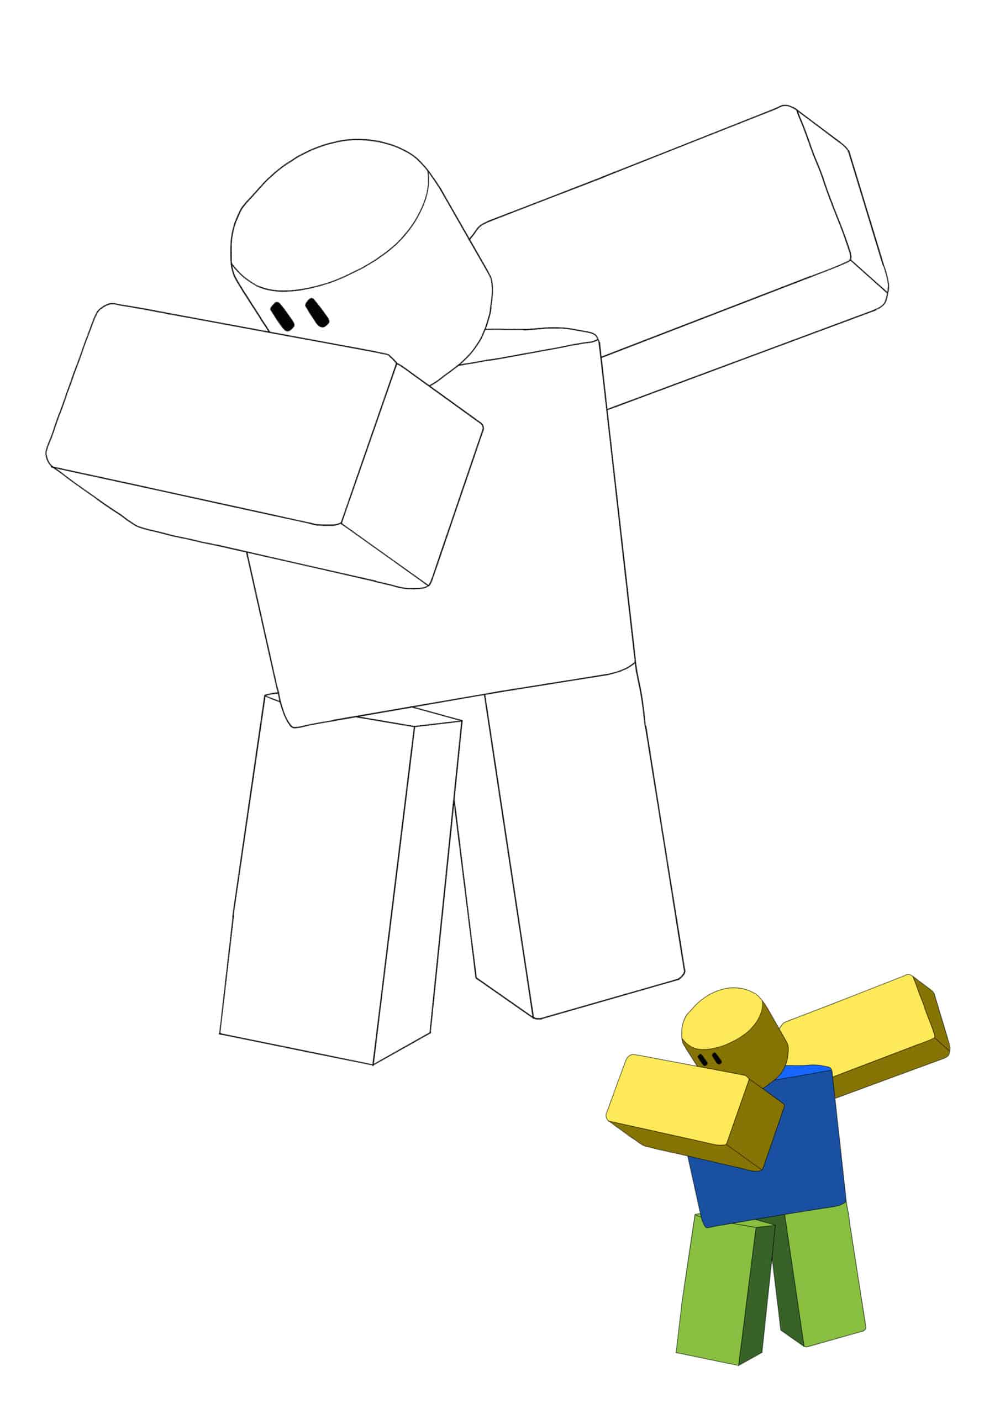 f76d2e0dfd7e59dd0d16f6bfe77bfe63 » Roblox Builderman Coloring Pages